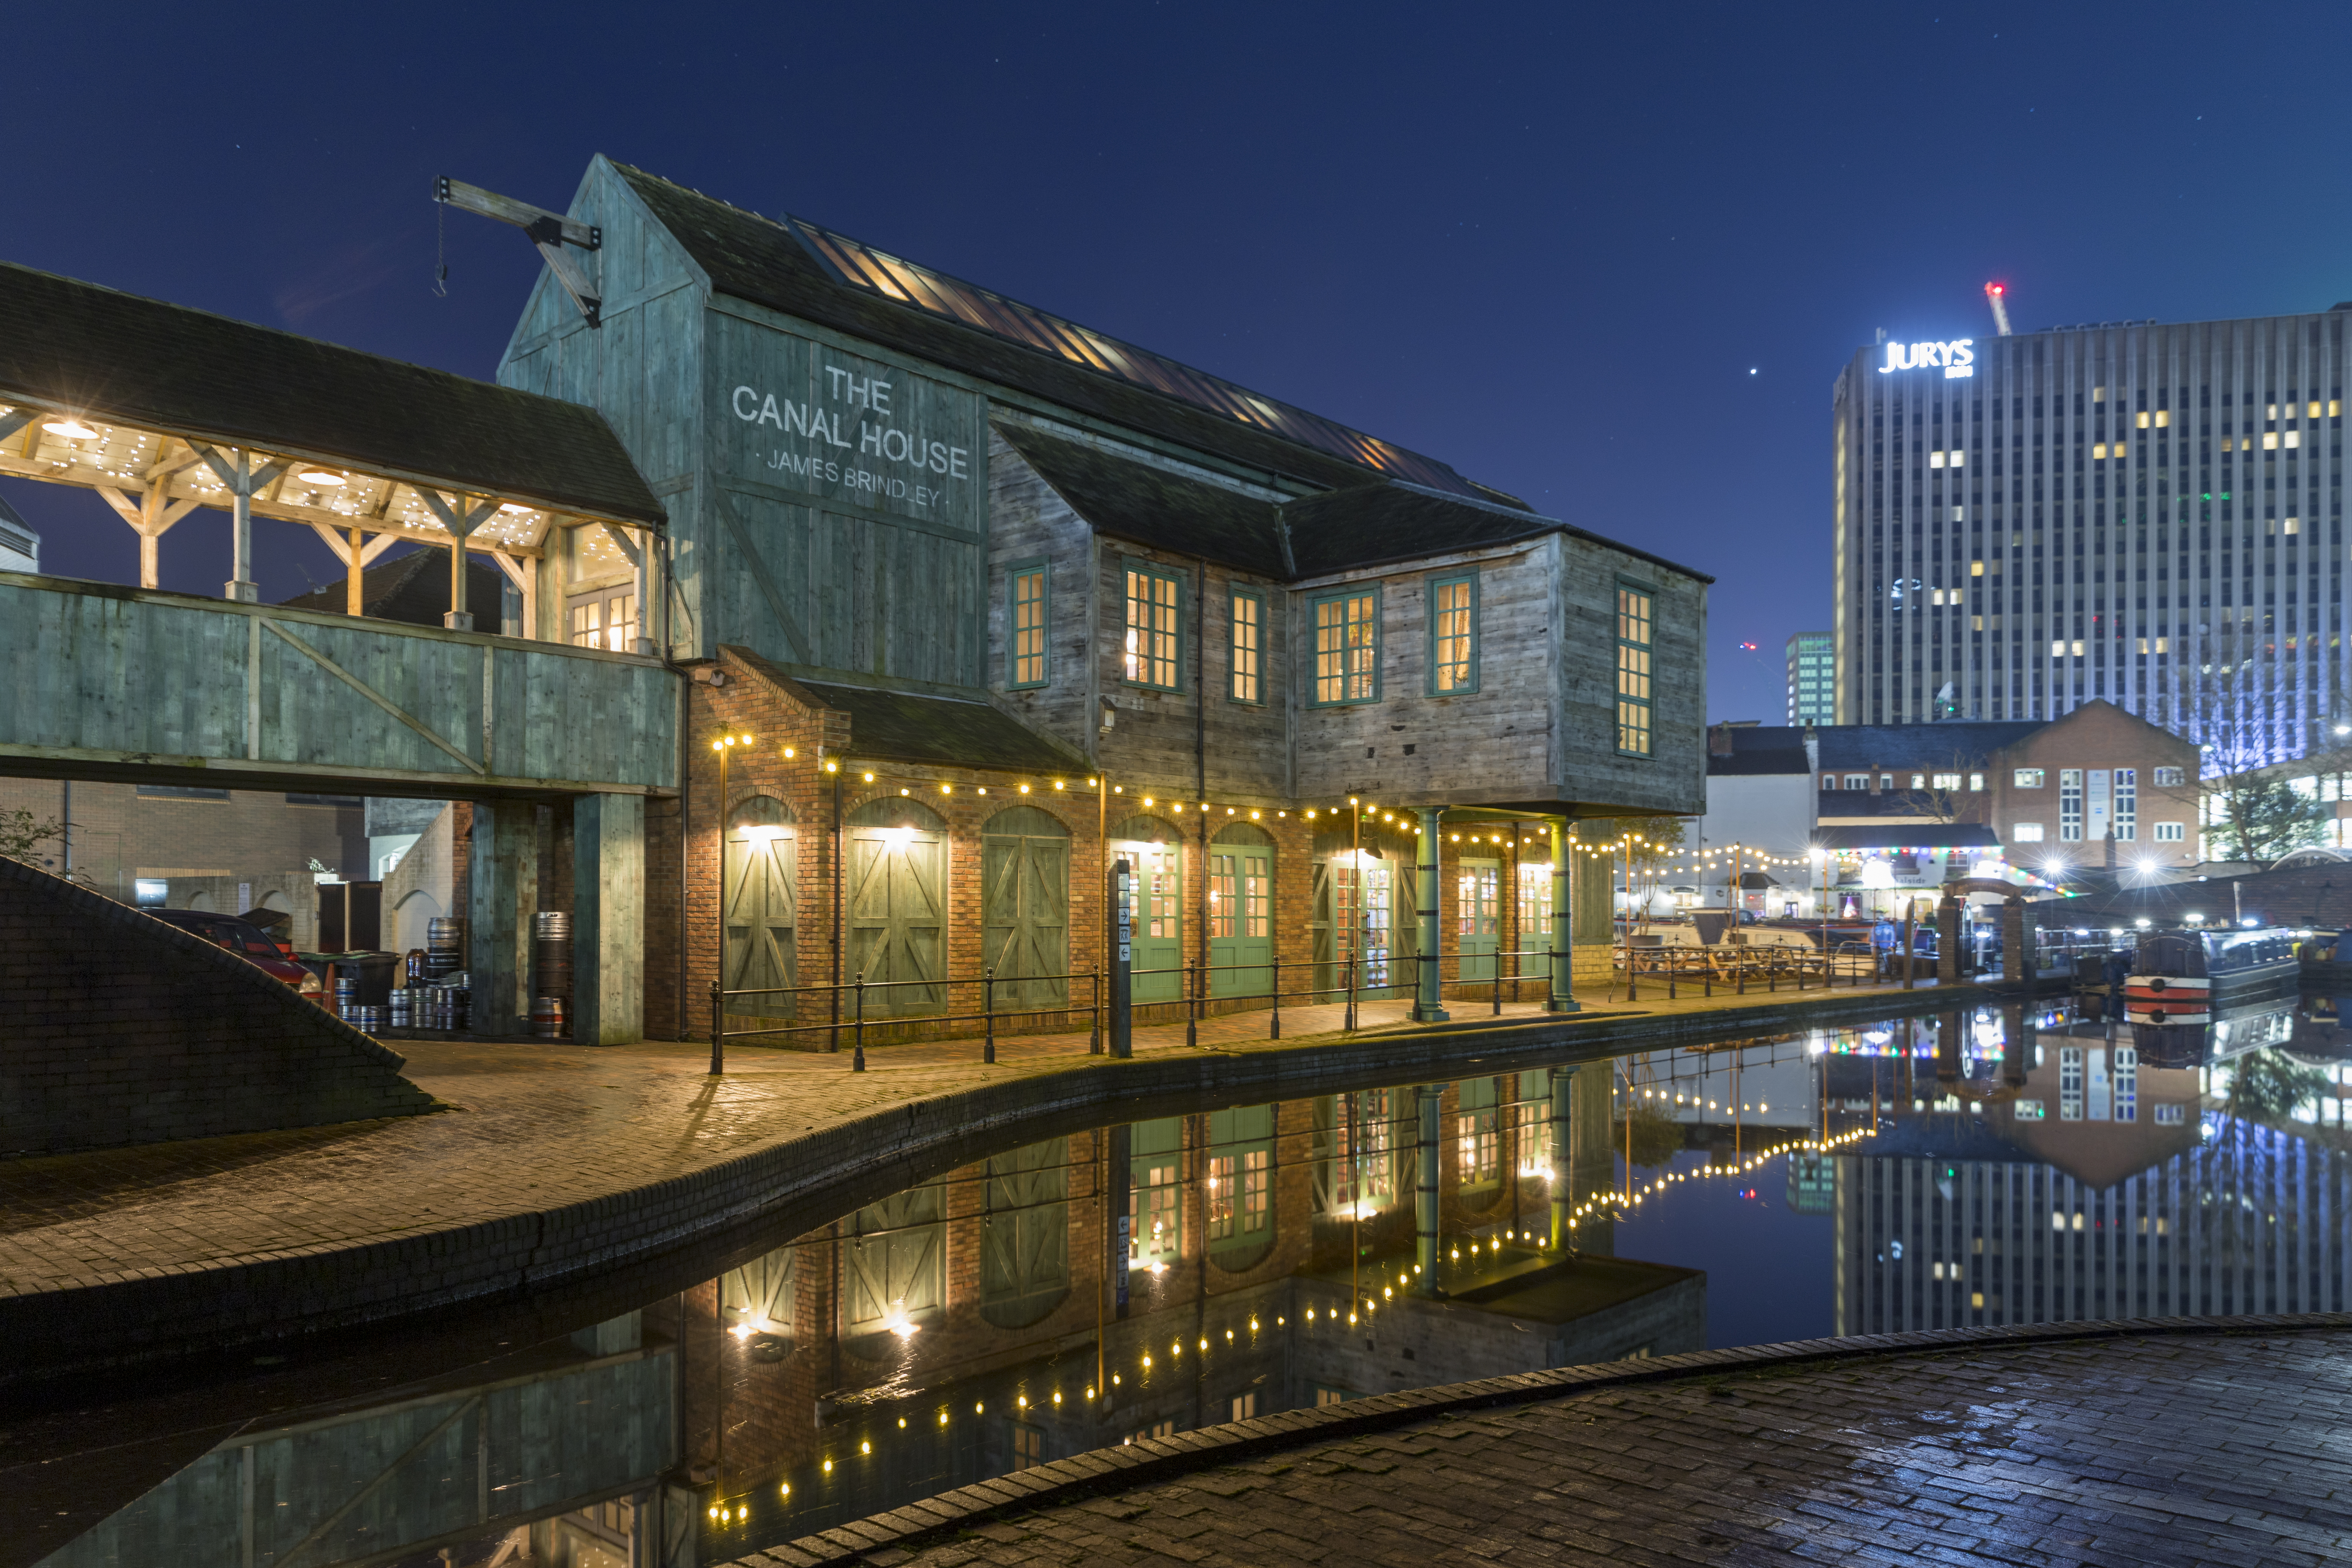 2020 - The Canal House, Gas Street Basin, Birmingham